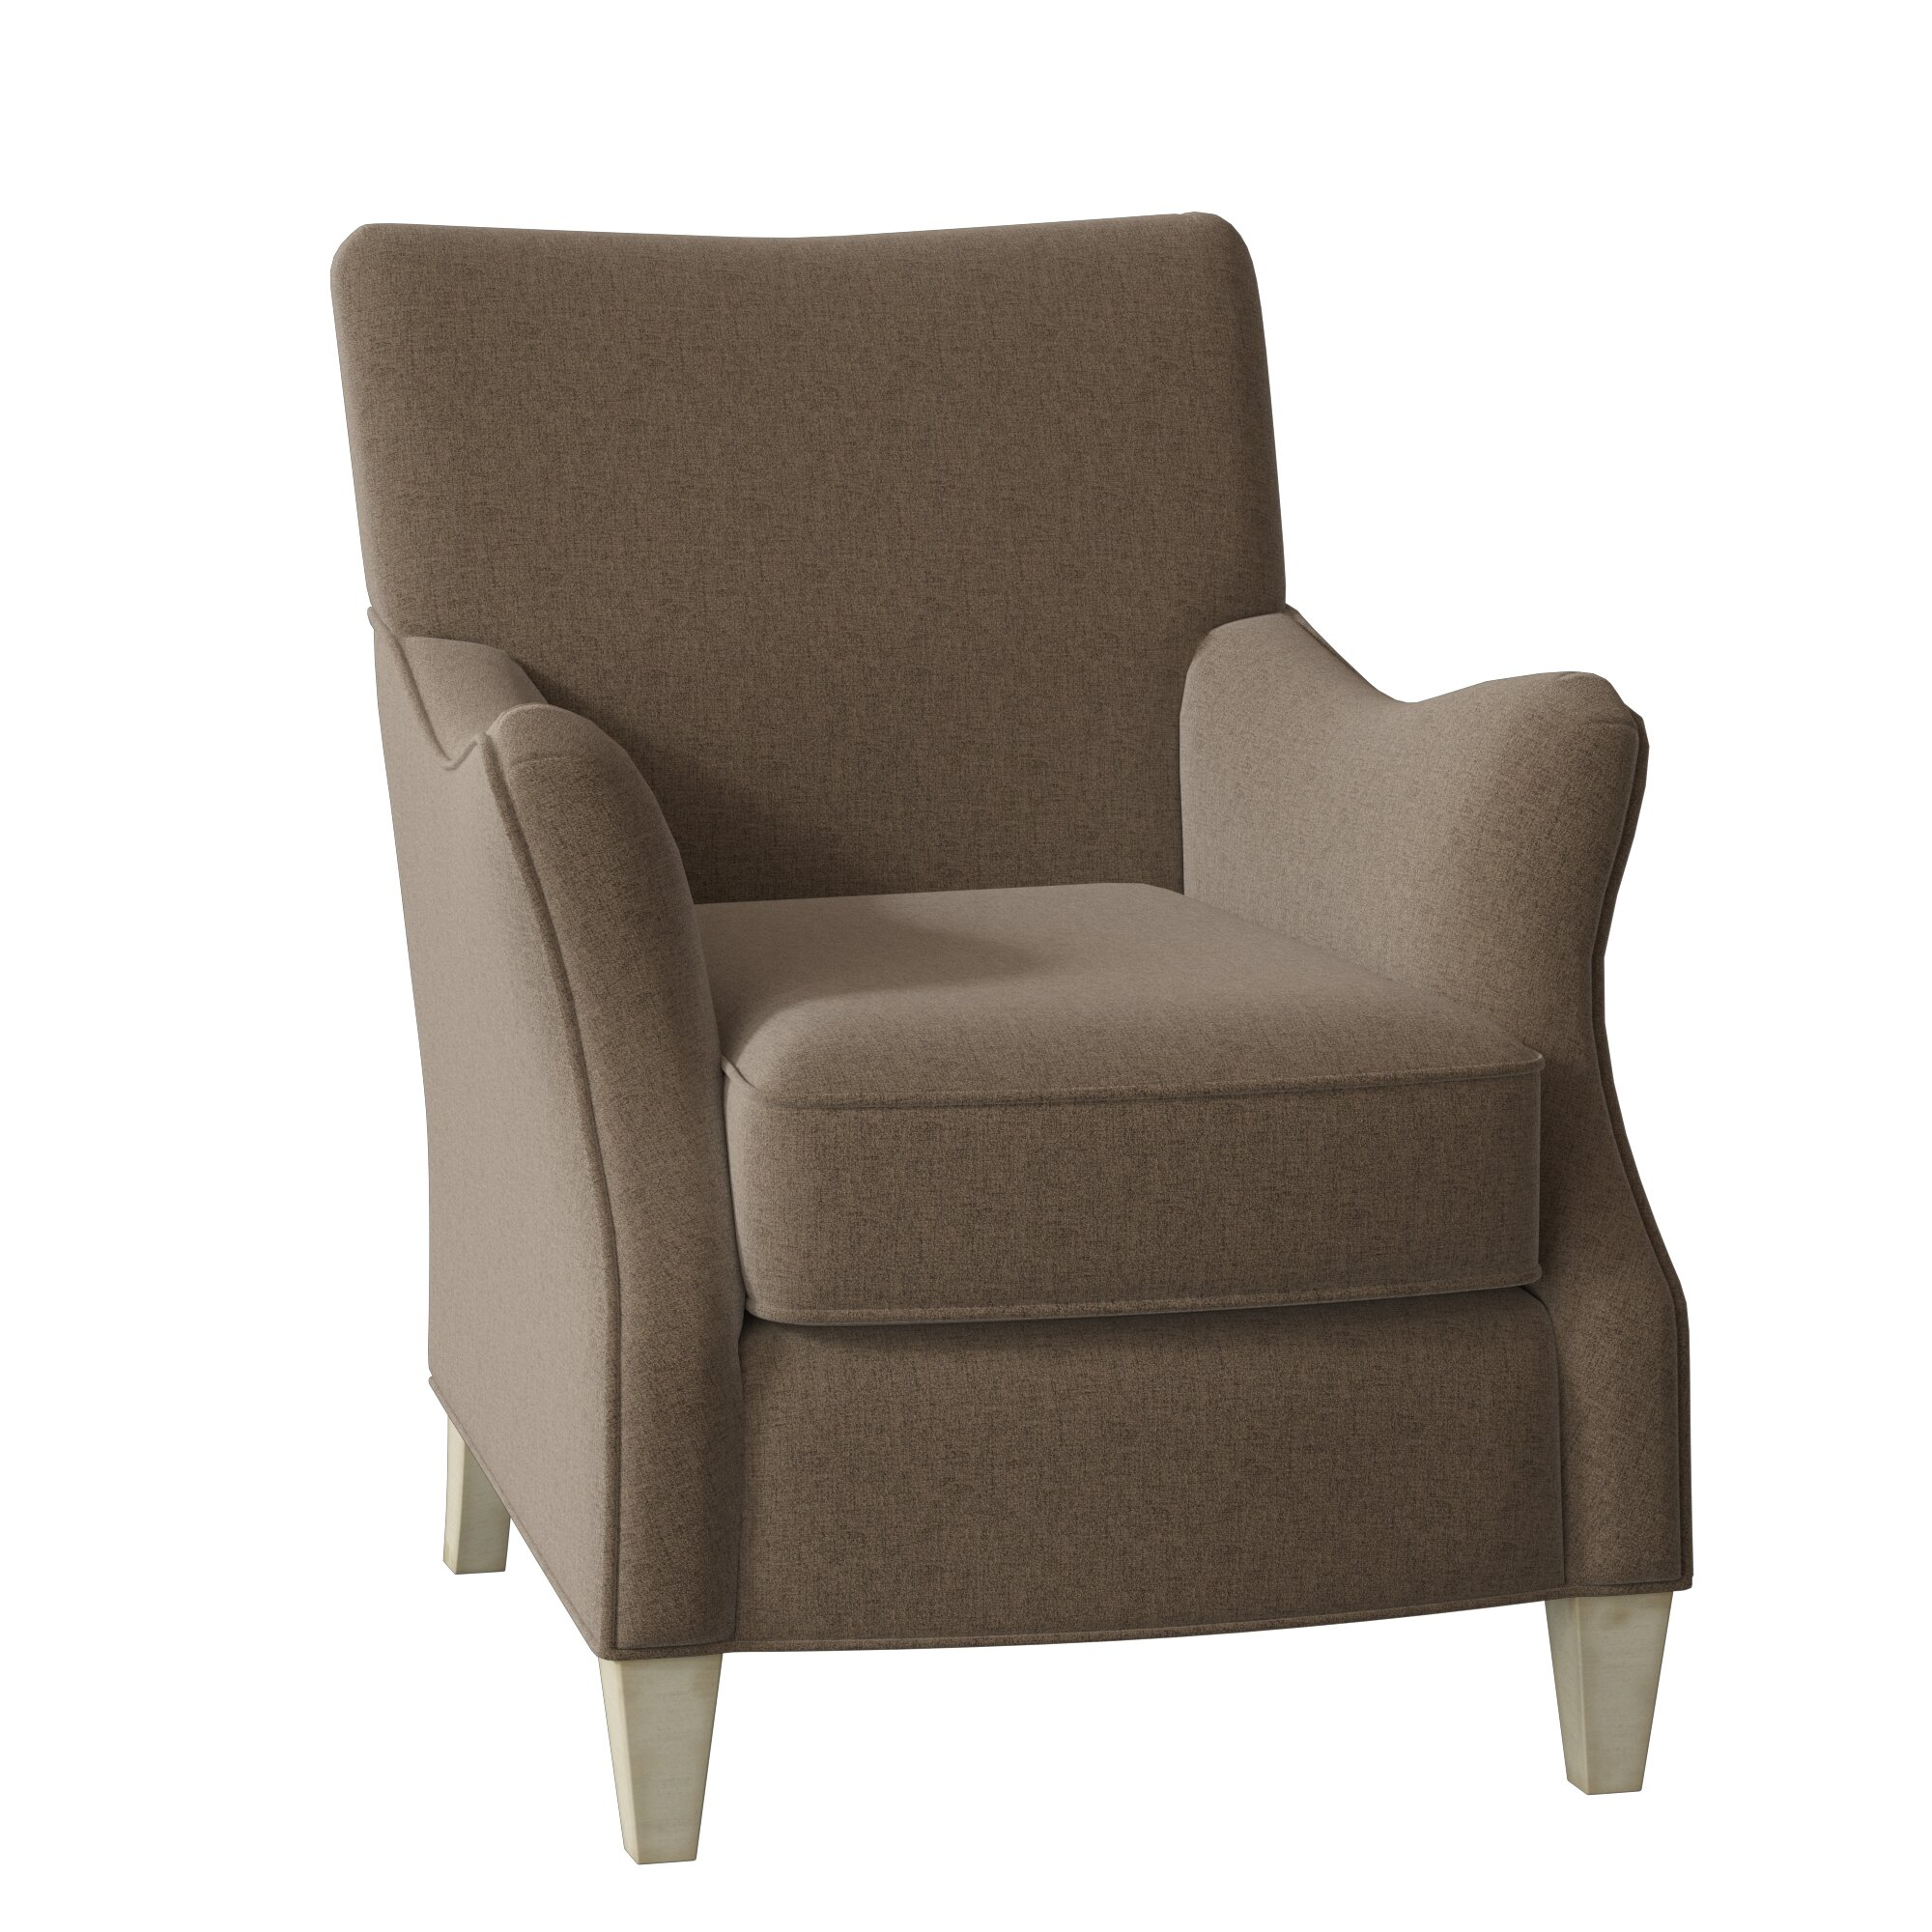 Fairfield Chair Leland Armchair Wayfair